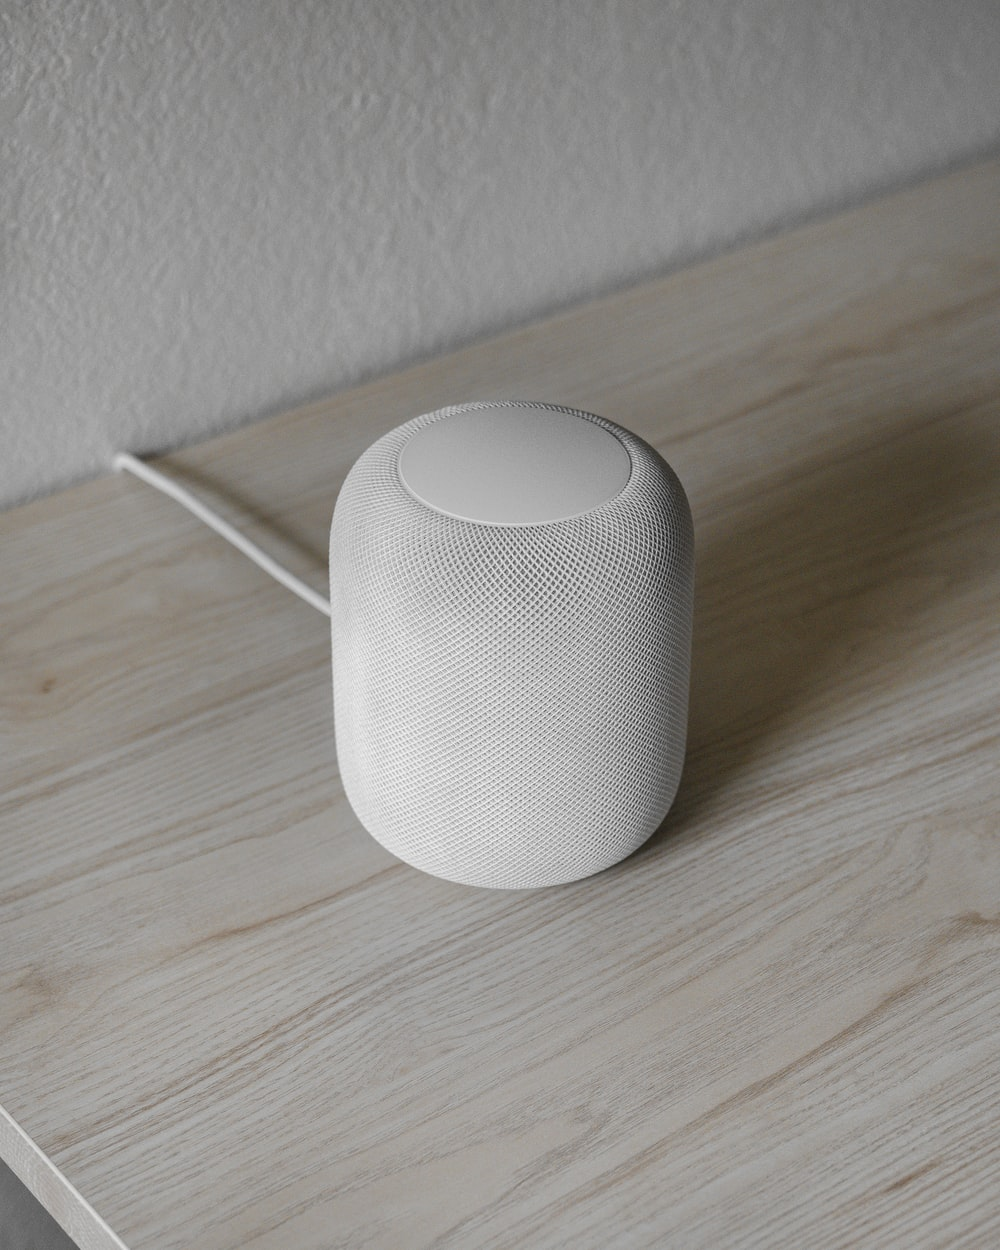 white round portable speaker on brown wooden table